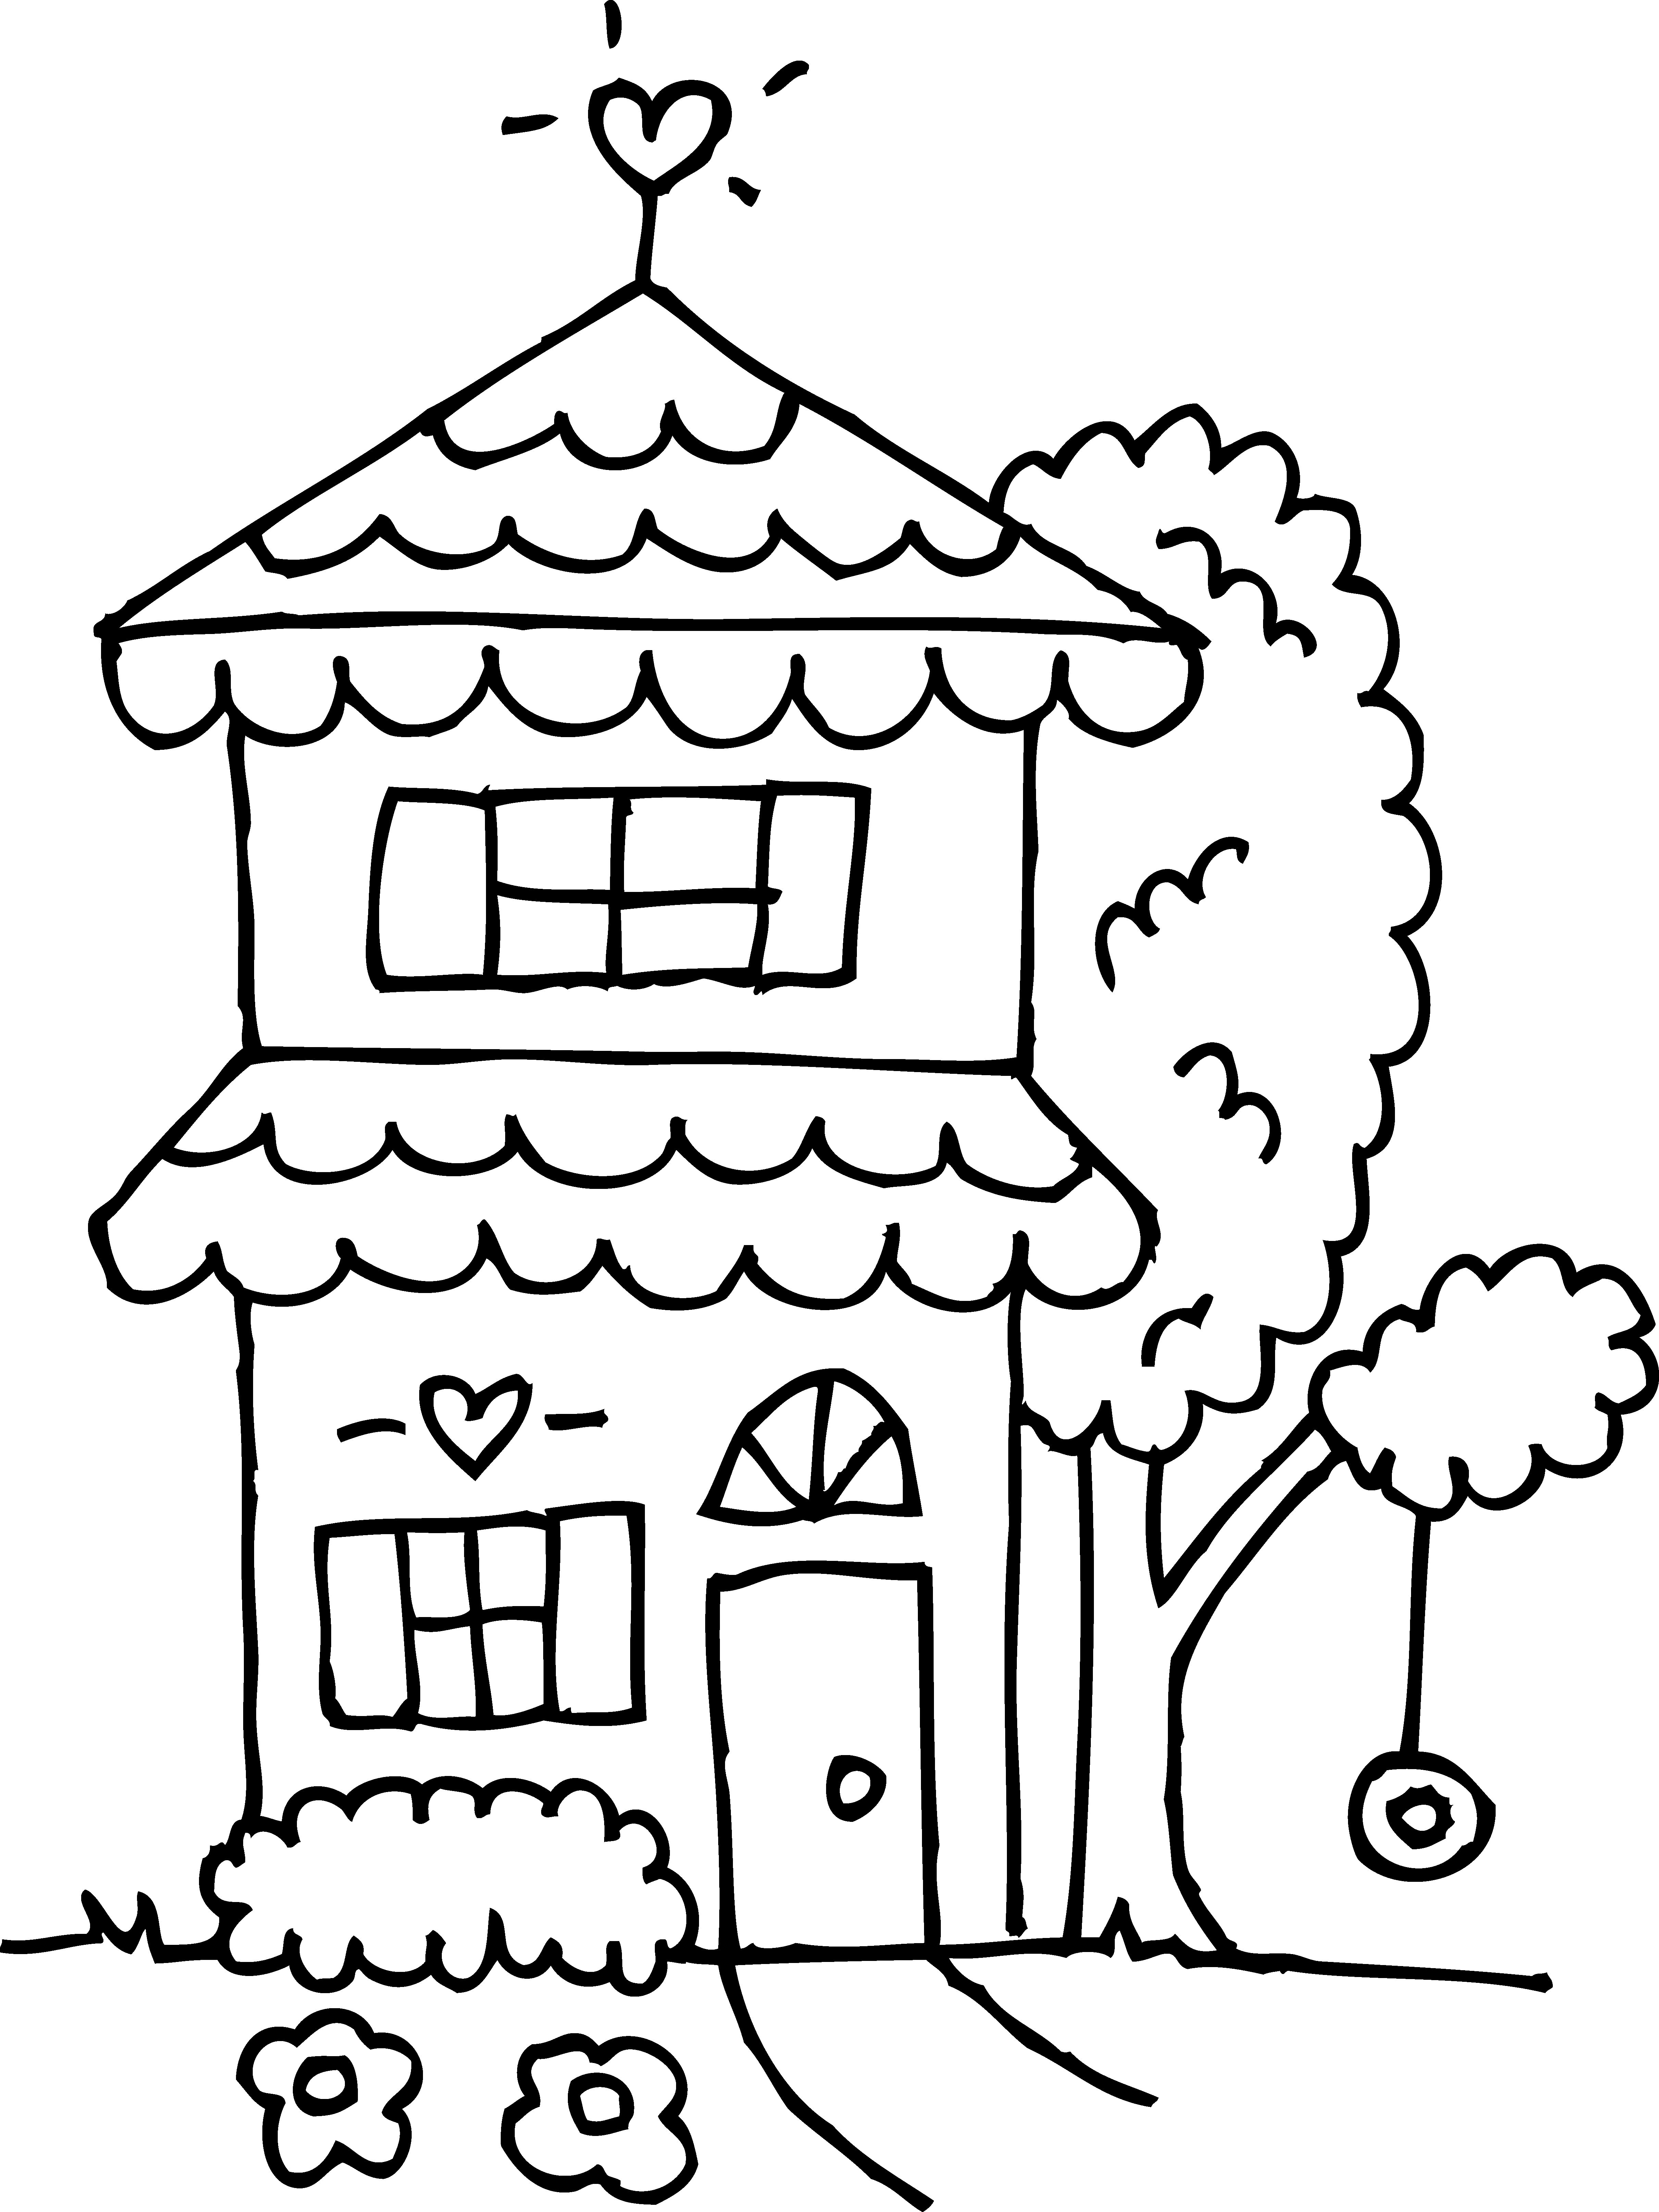 home coloring image free printable house coloring pages for kids home image coloring